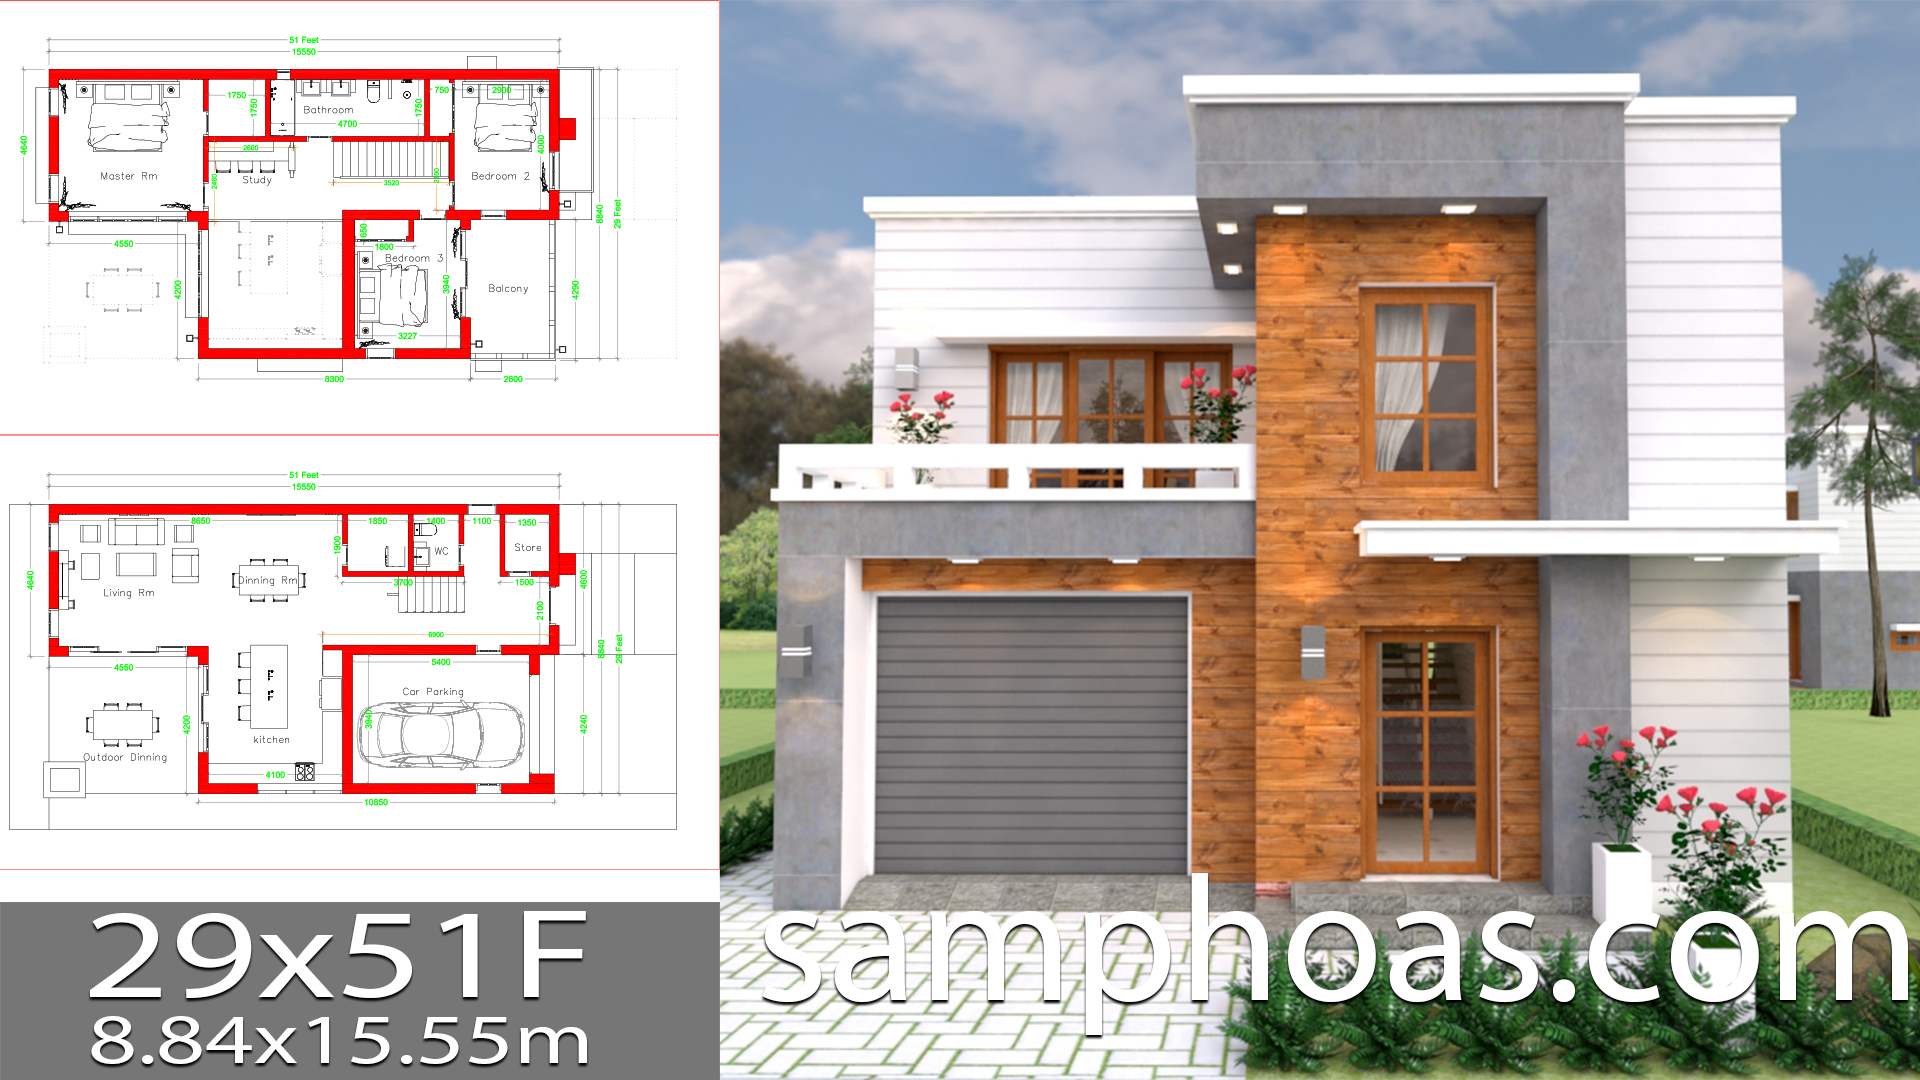 House Design Plans 29x51 Feet with 3 bedrooms - House Plans Free ...